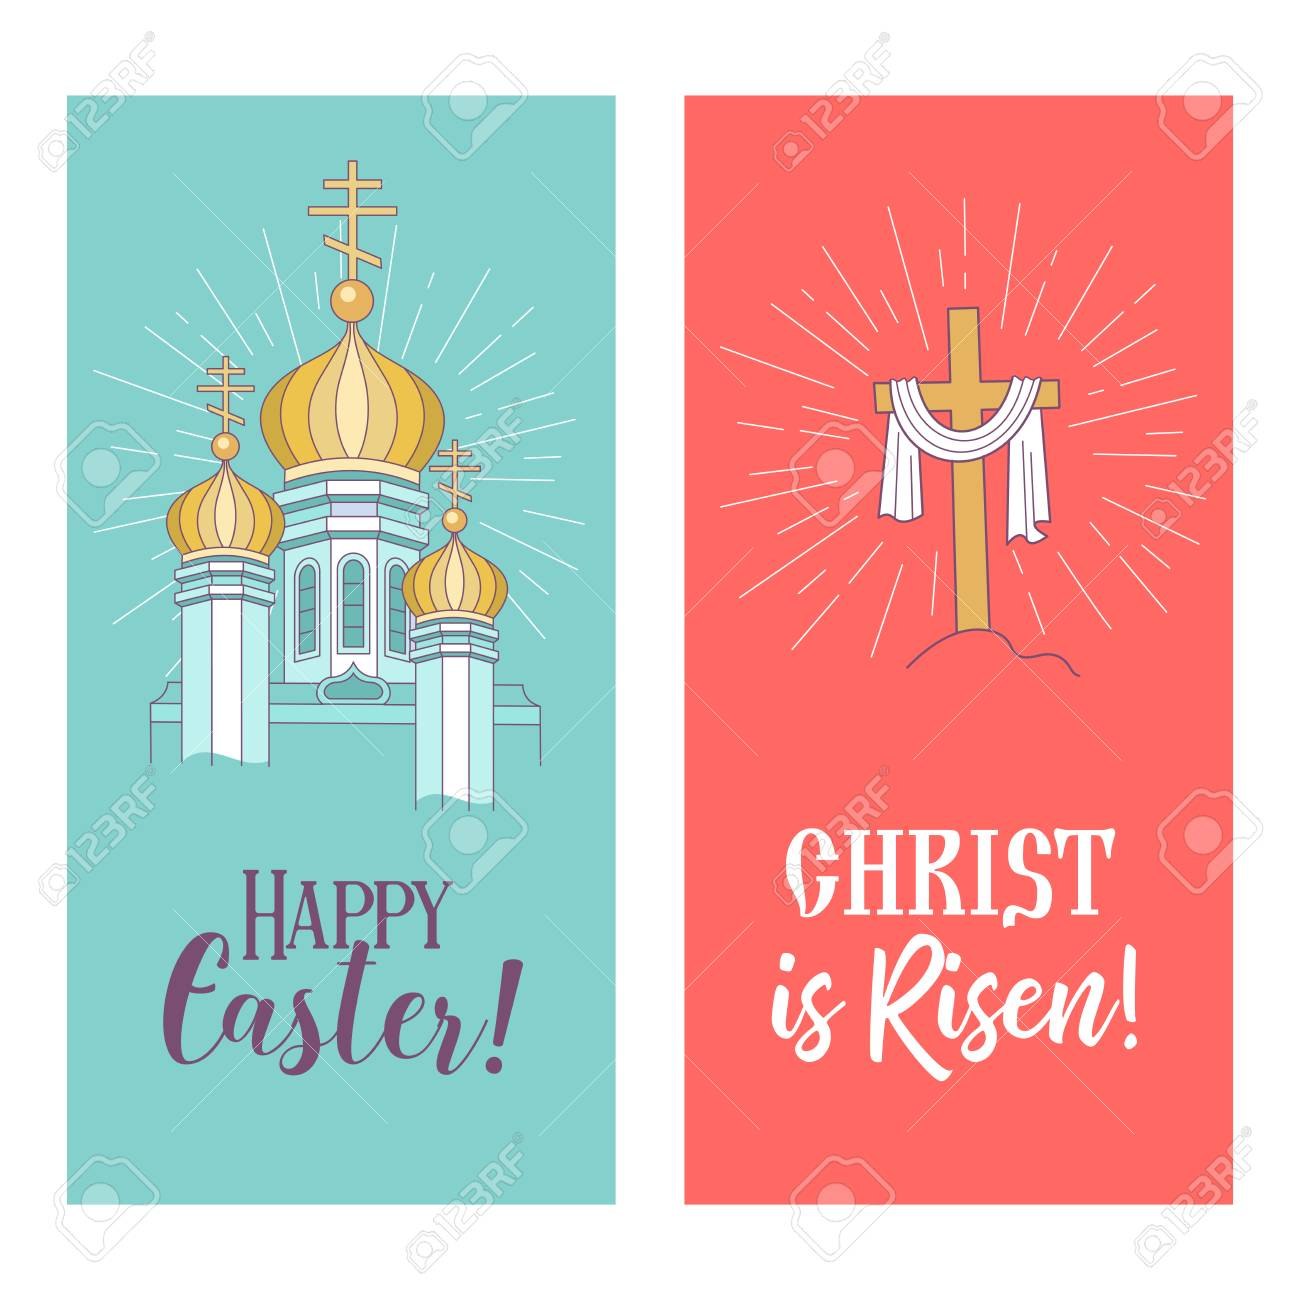 Happy Easter He Is Risen Vector Illustration Greeting Card